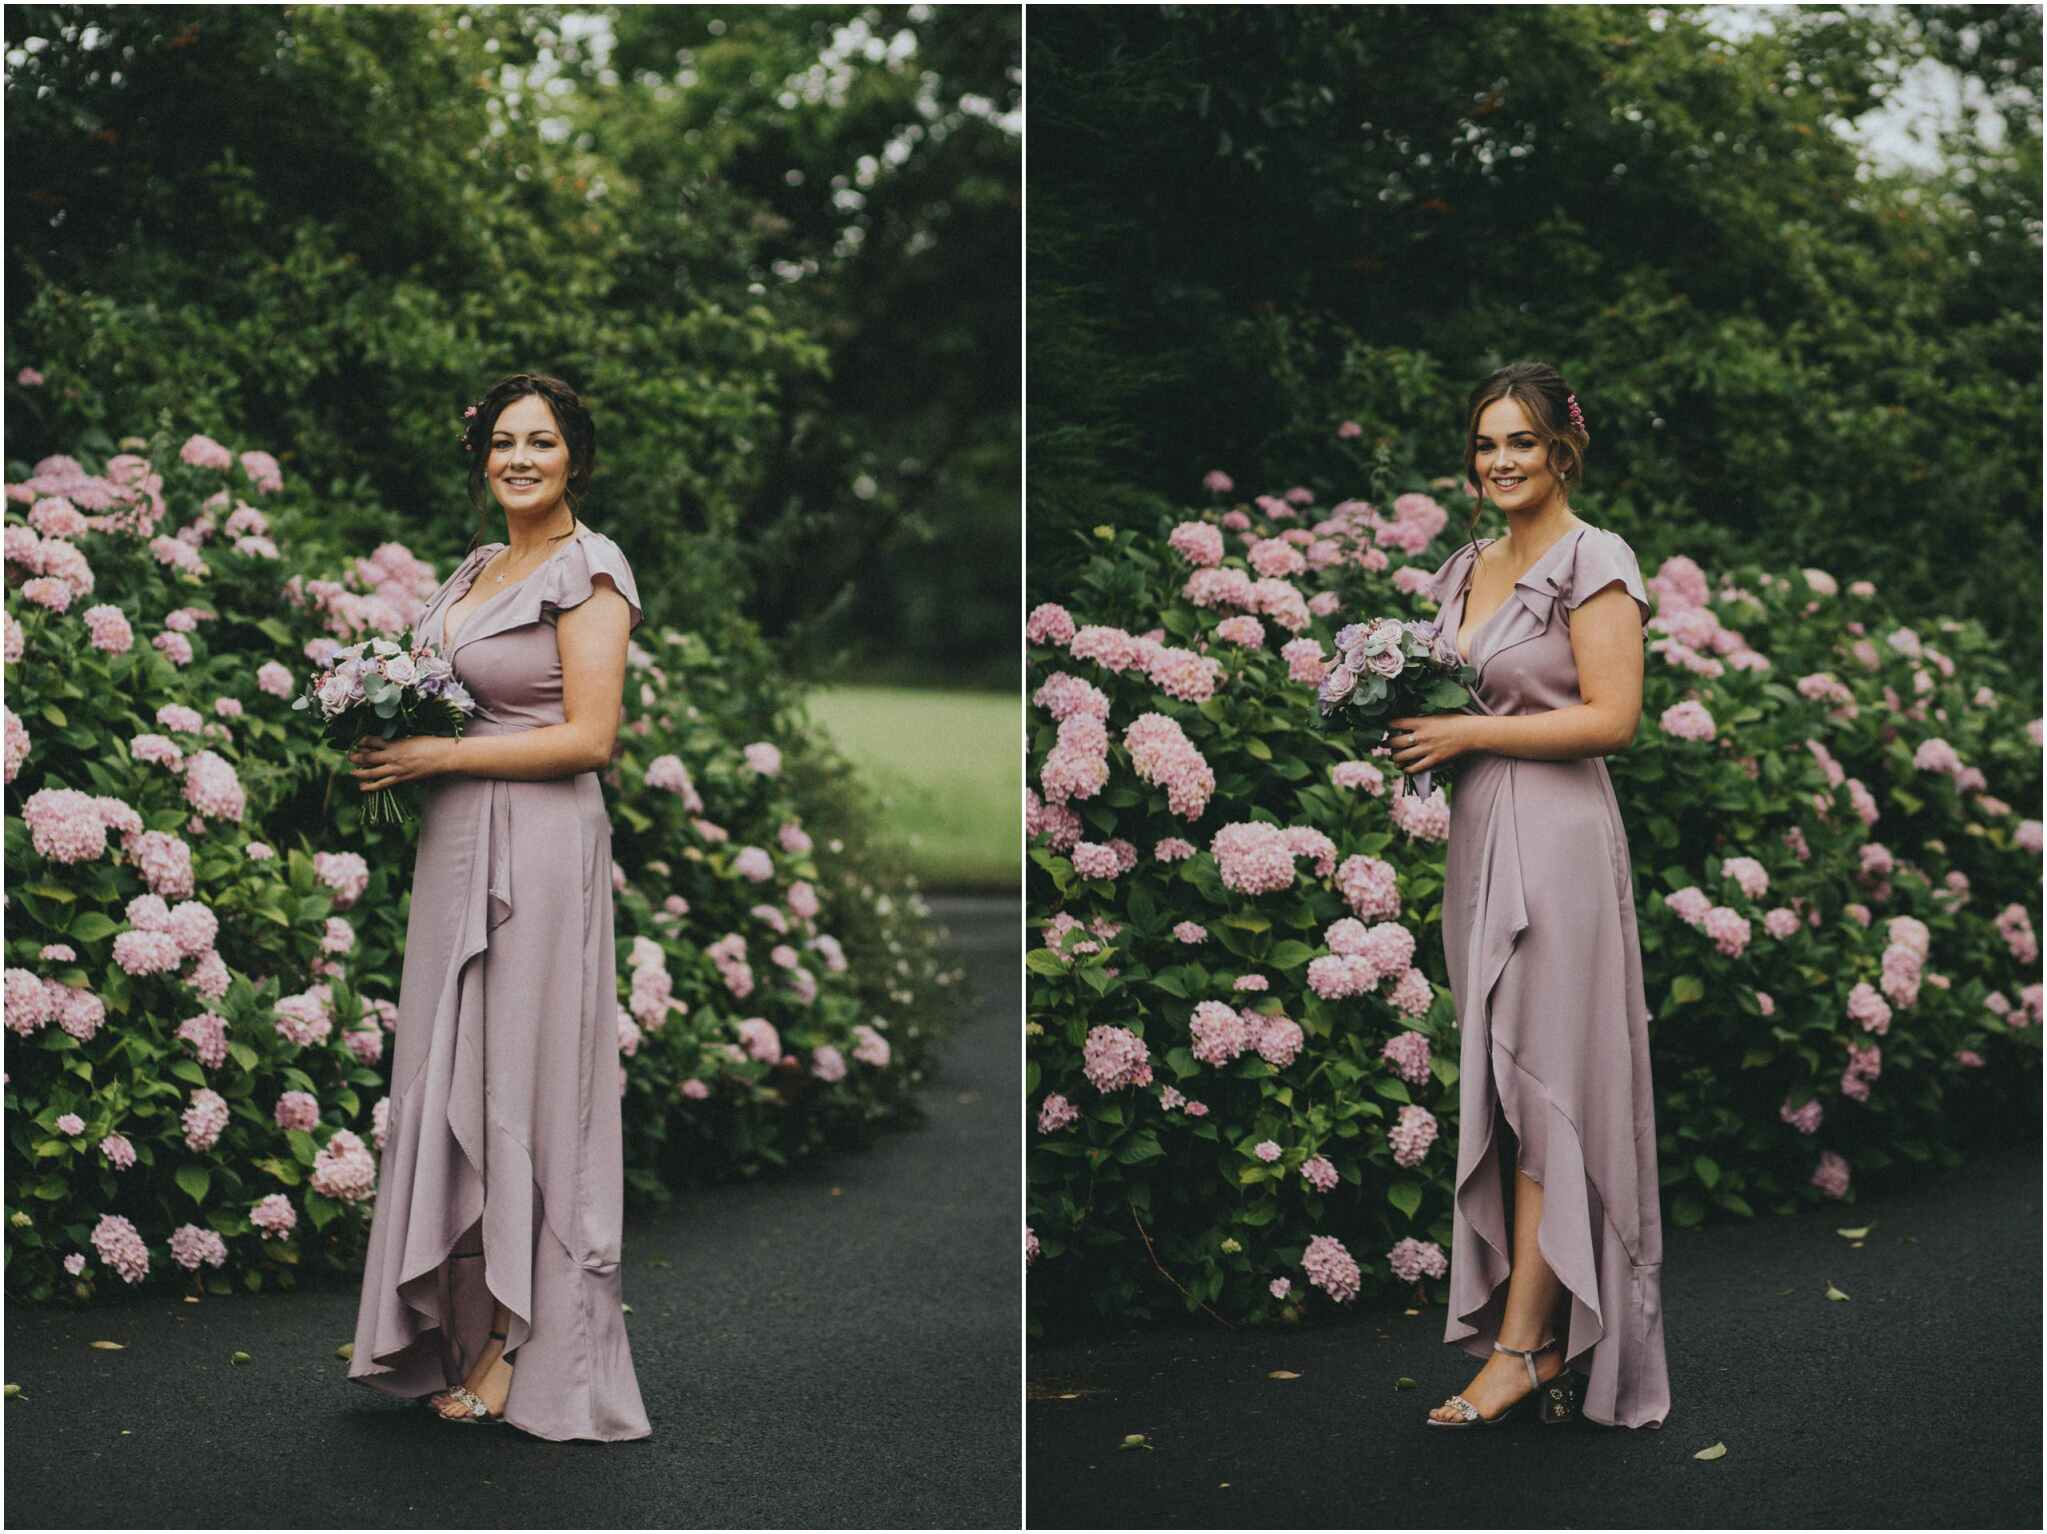 Barberstown castle Ireland Irish Castle Wedding00092 - Fun and Relaxed wedding and elopement photography in Ireland, perfect for adventurous and outdoorsy couples